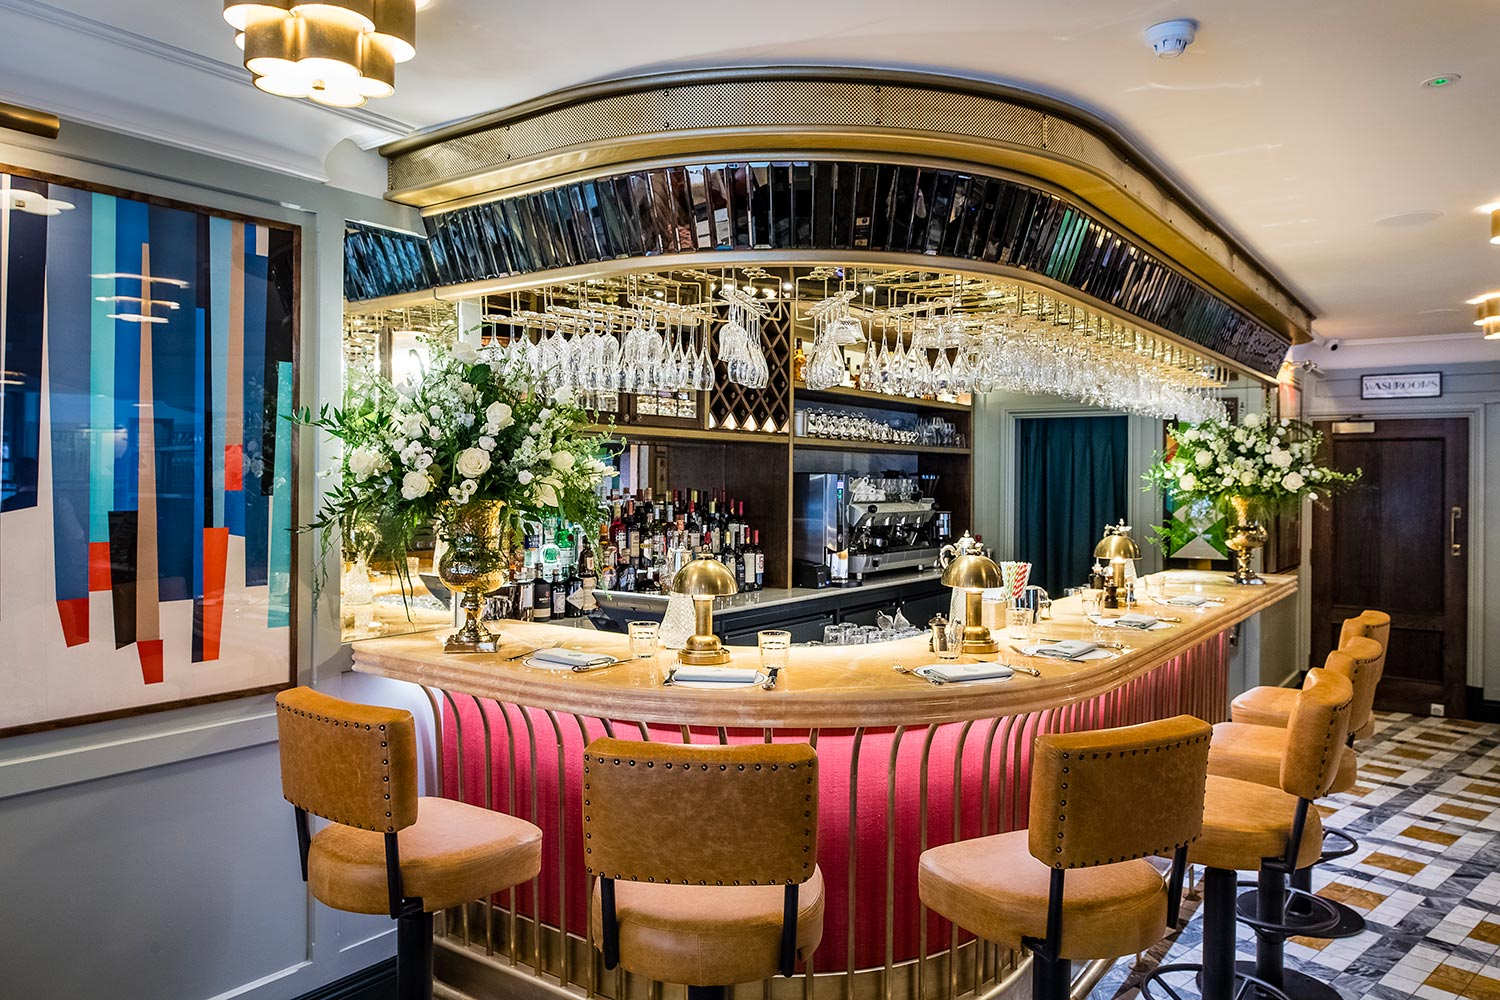 Cocktails and Drinks at The Ivy St Albans Brasserie - The Ivy St Albans Brasserie